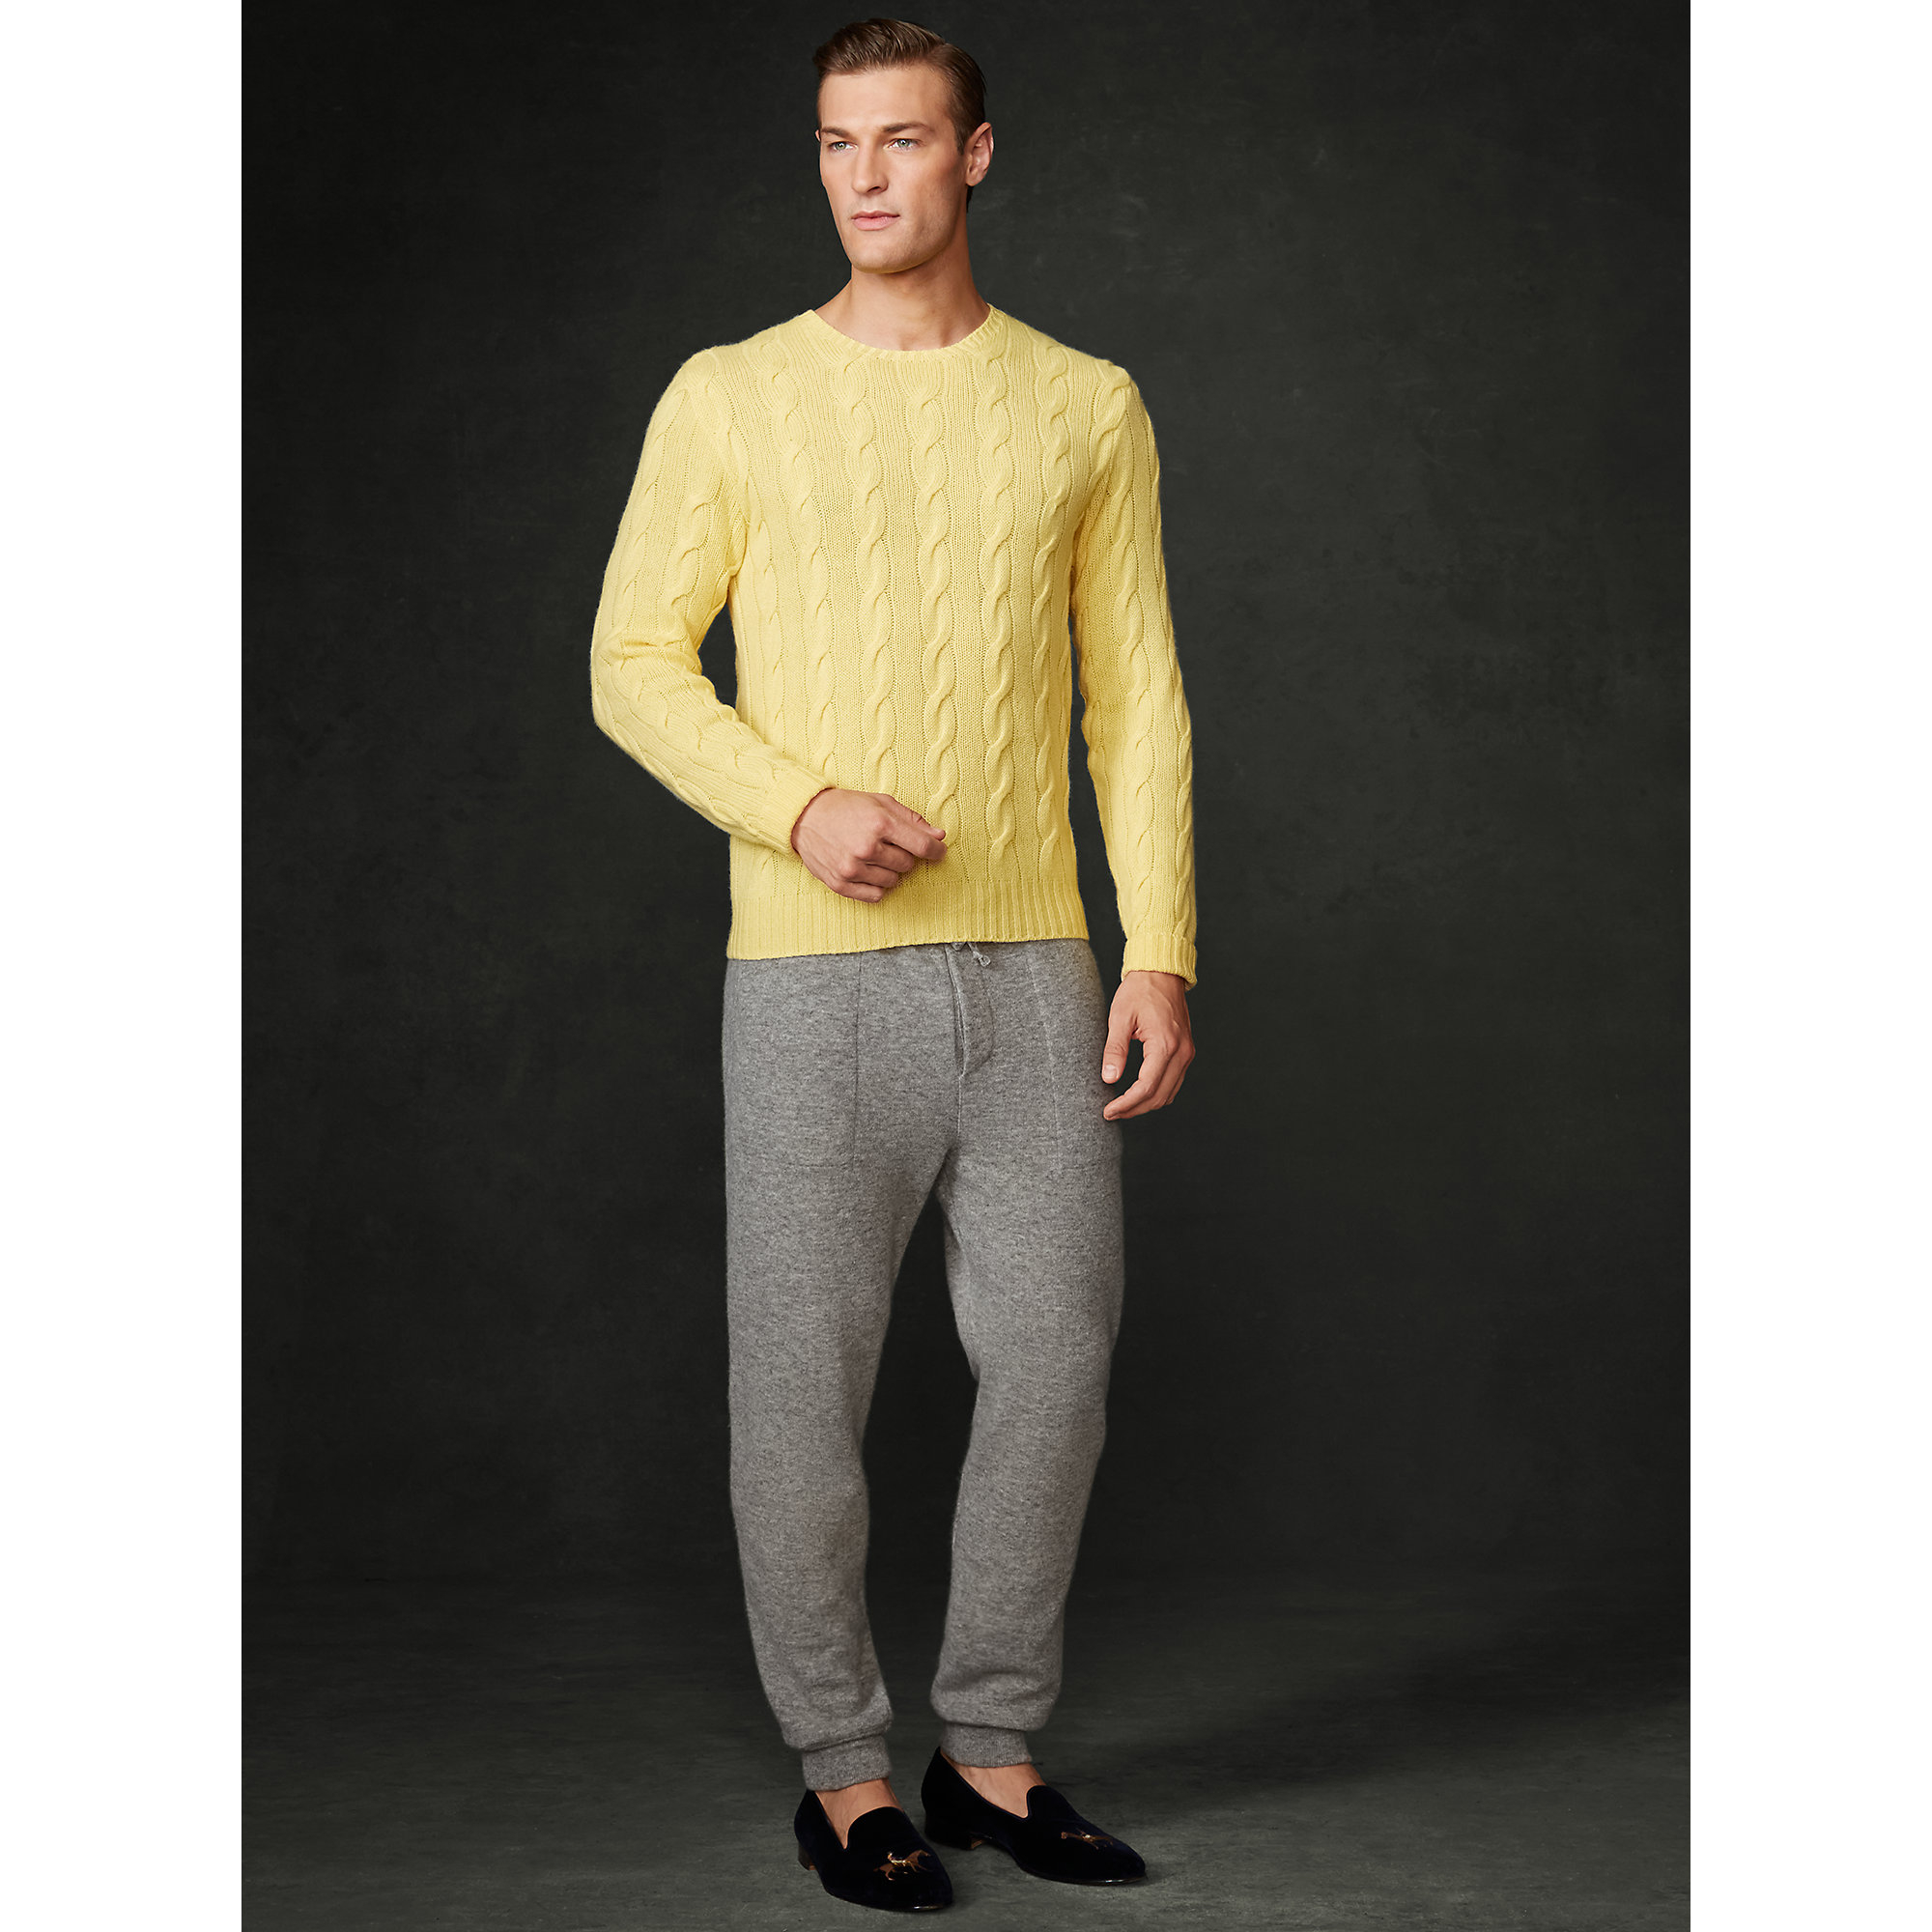 Ralph lauren purple label Cable-Knit Cashmere Sweater in Yellow ...